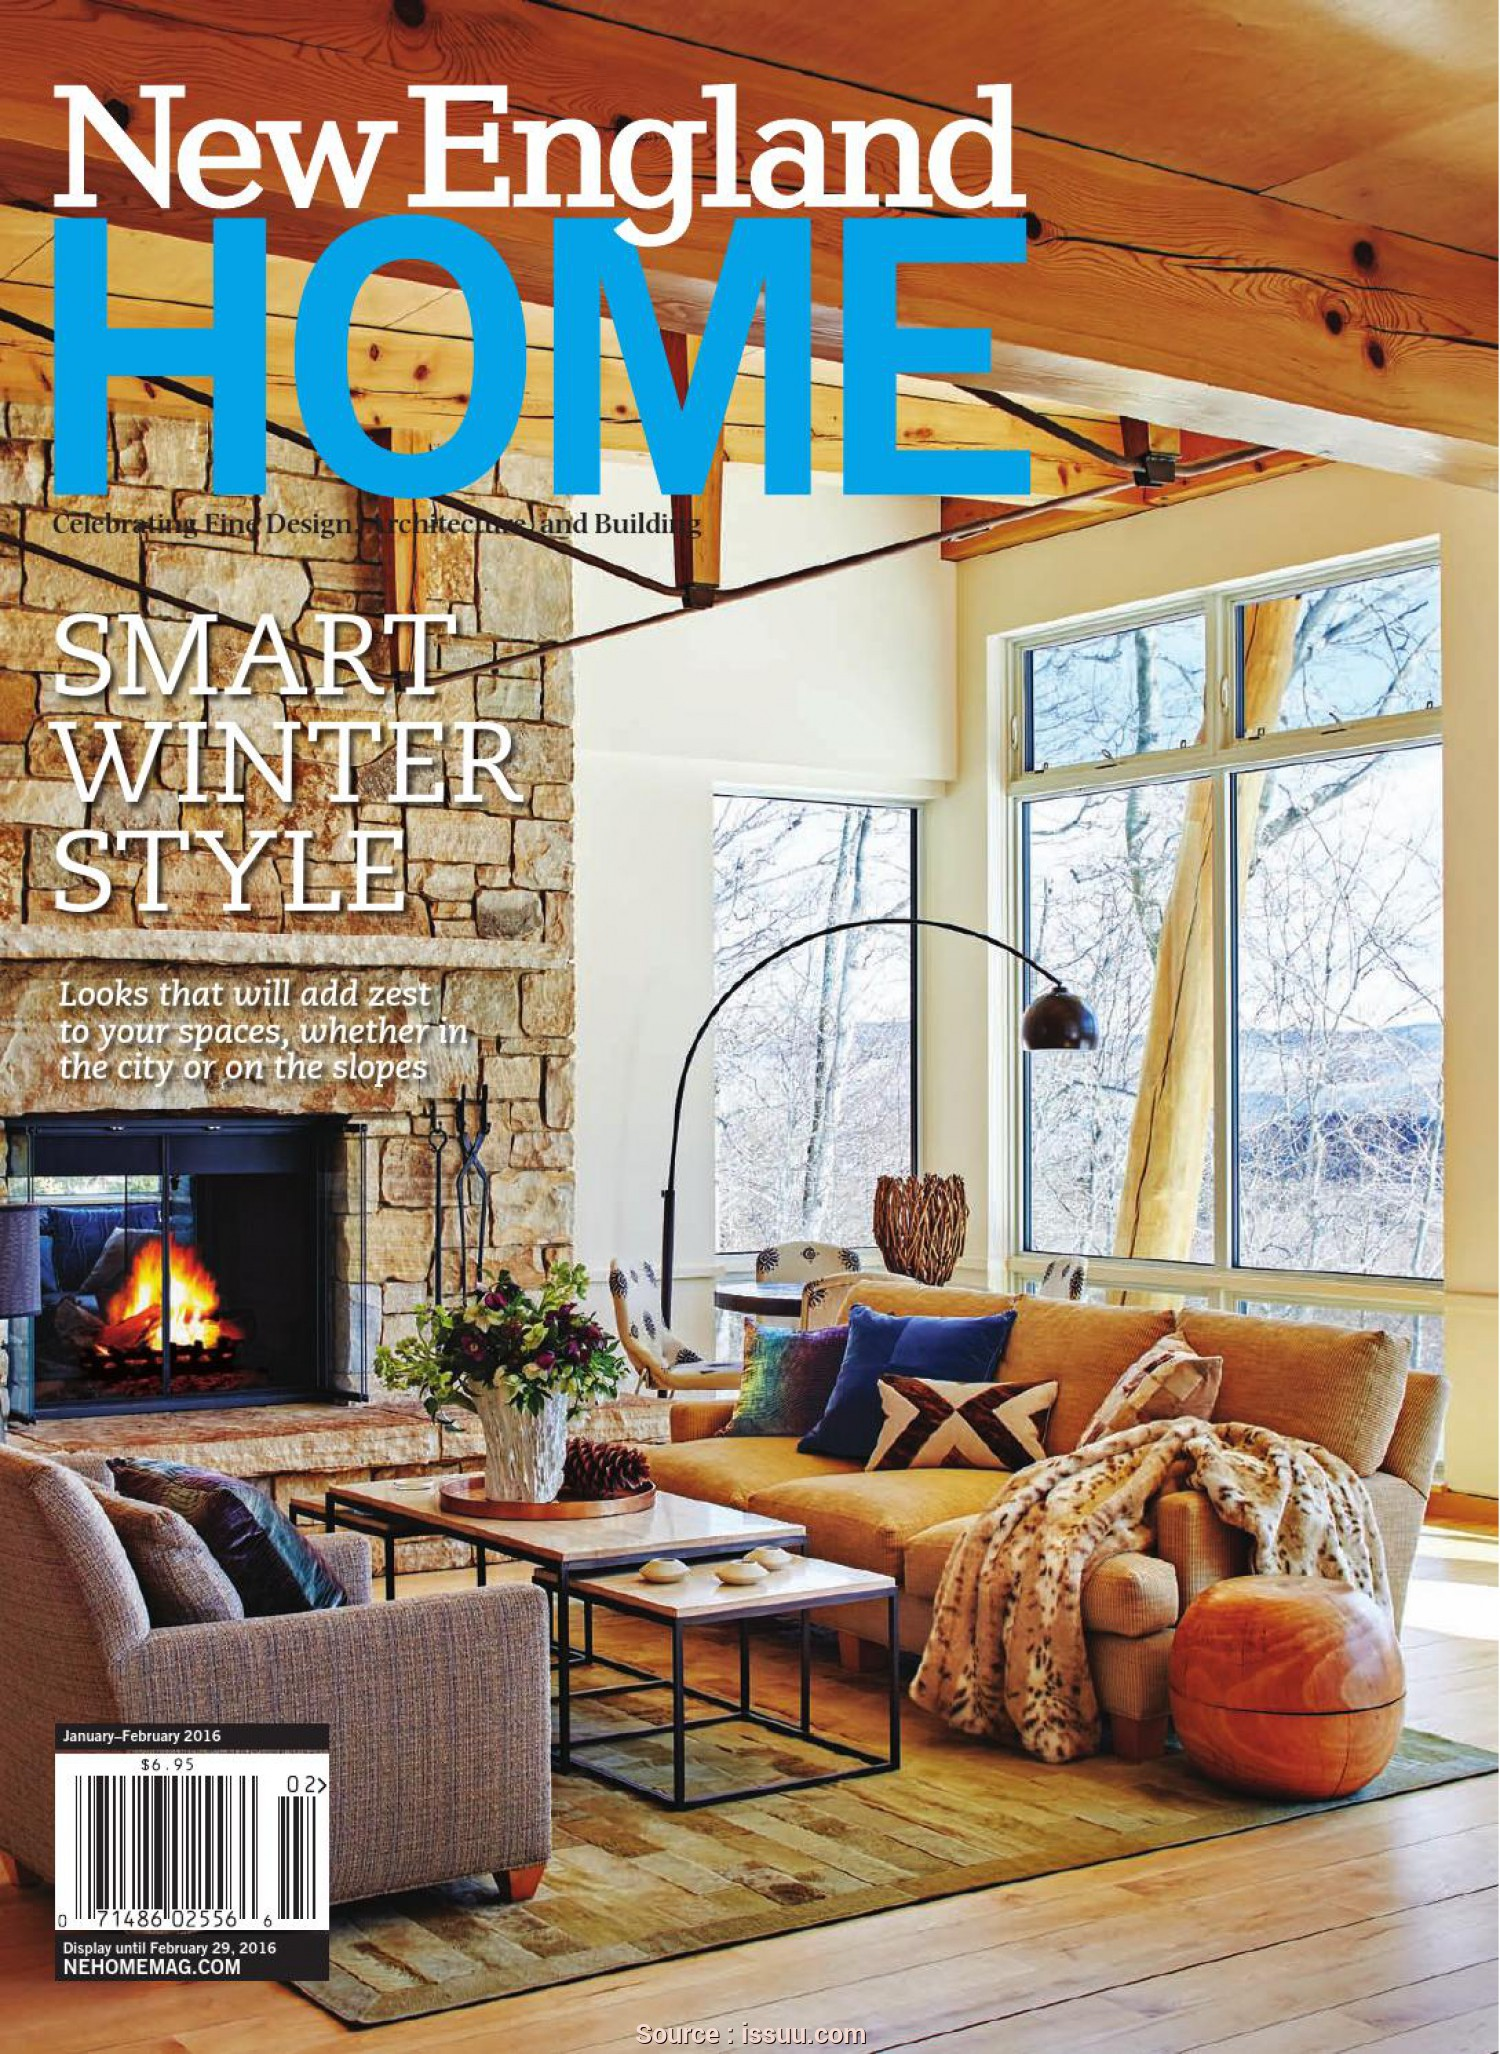 X Molteni Lettings, Completare New England Home Jan/Feb 2016 By, England Home Magazine,, Issuu